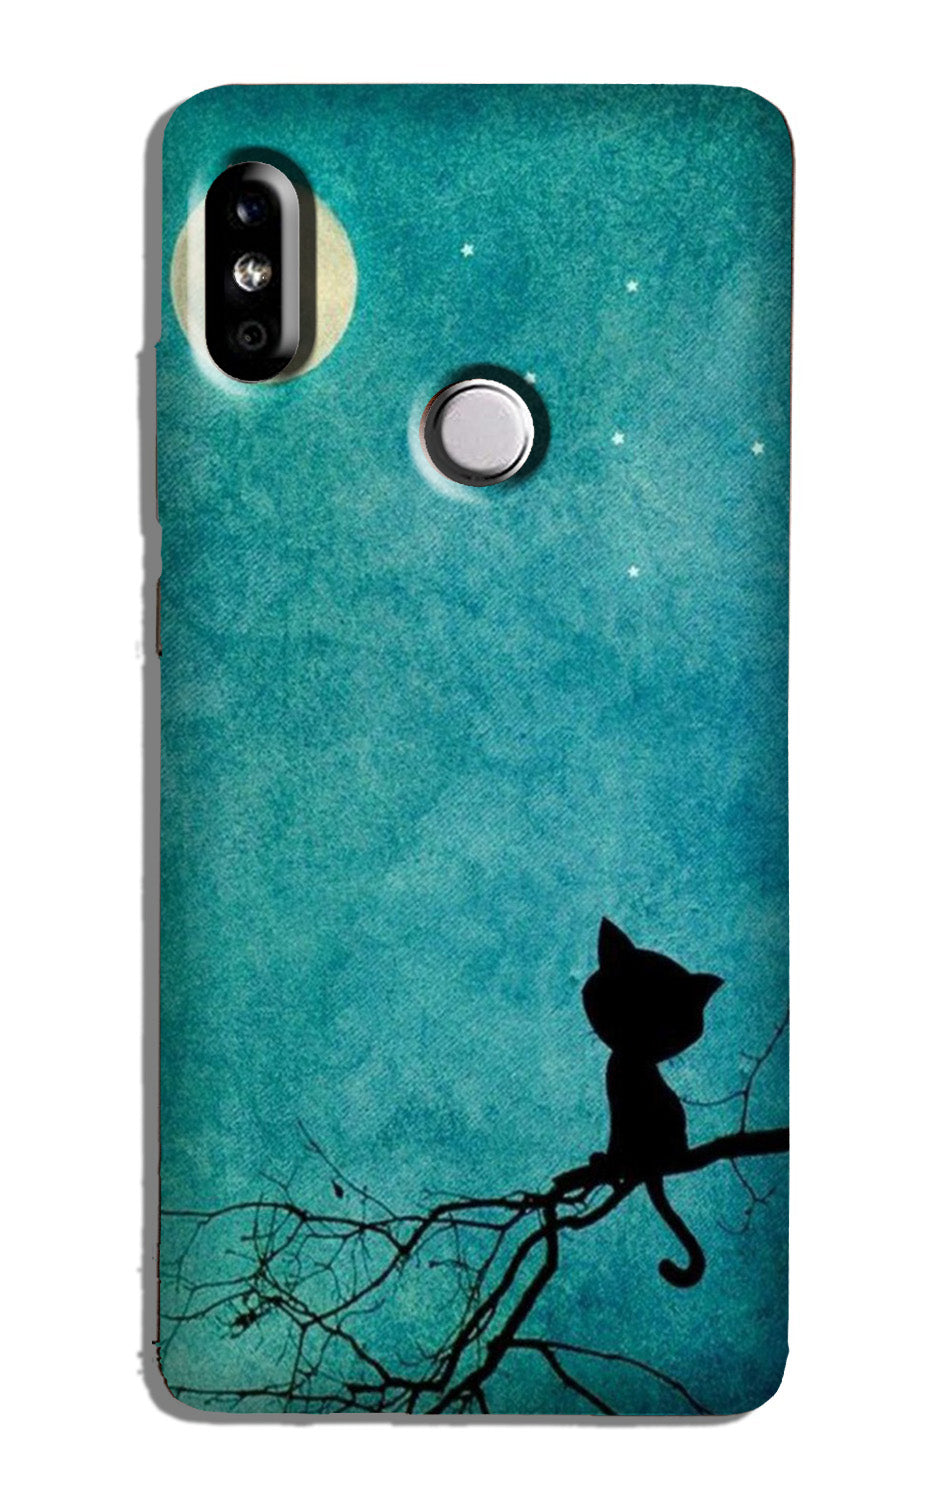 Moon cat Case for Redmi Note 6 Pro